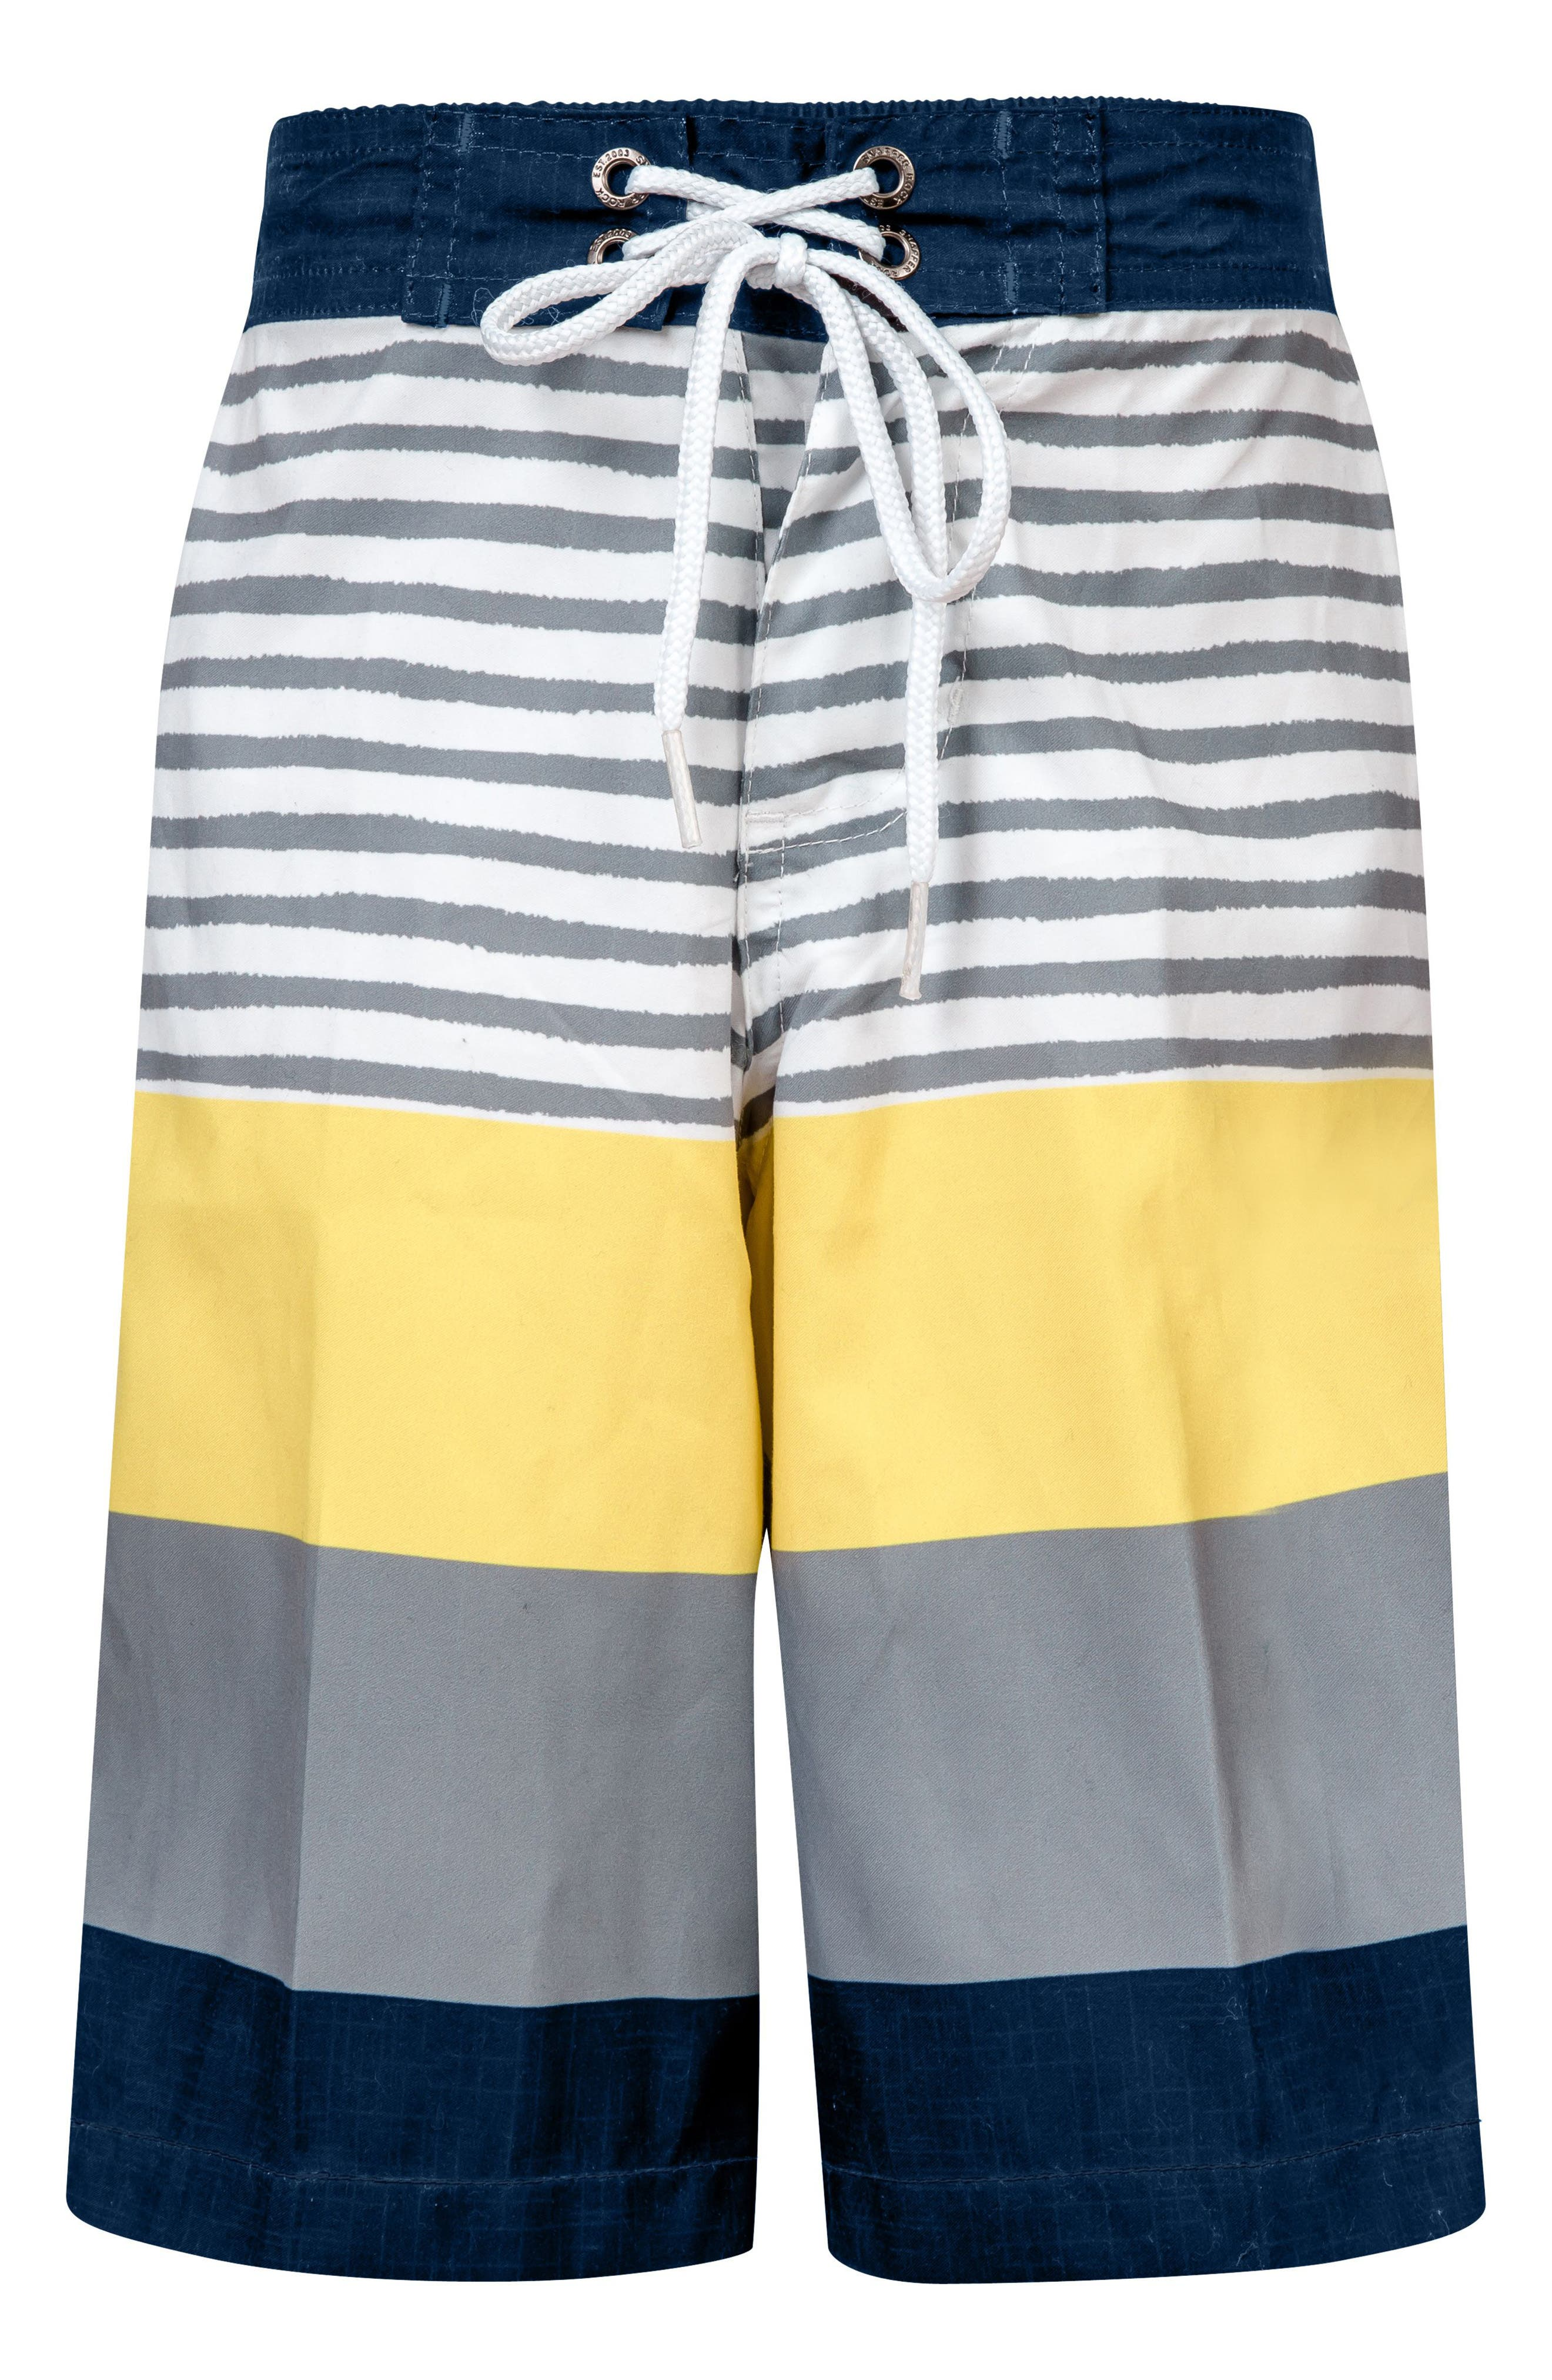 Stripe Board Shorts,                         Main,                         color, Navy/ Yellow/ White